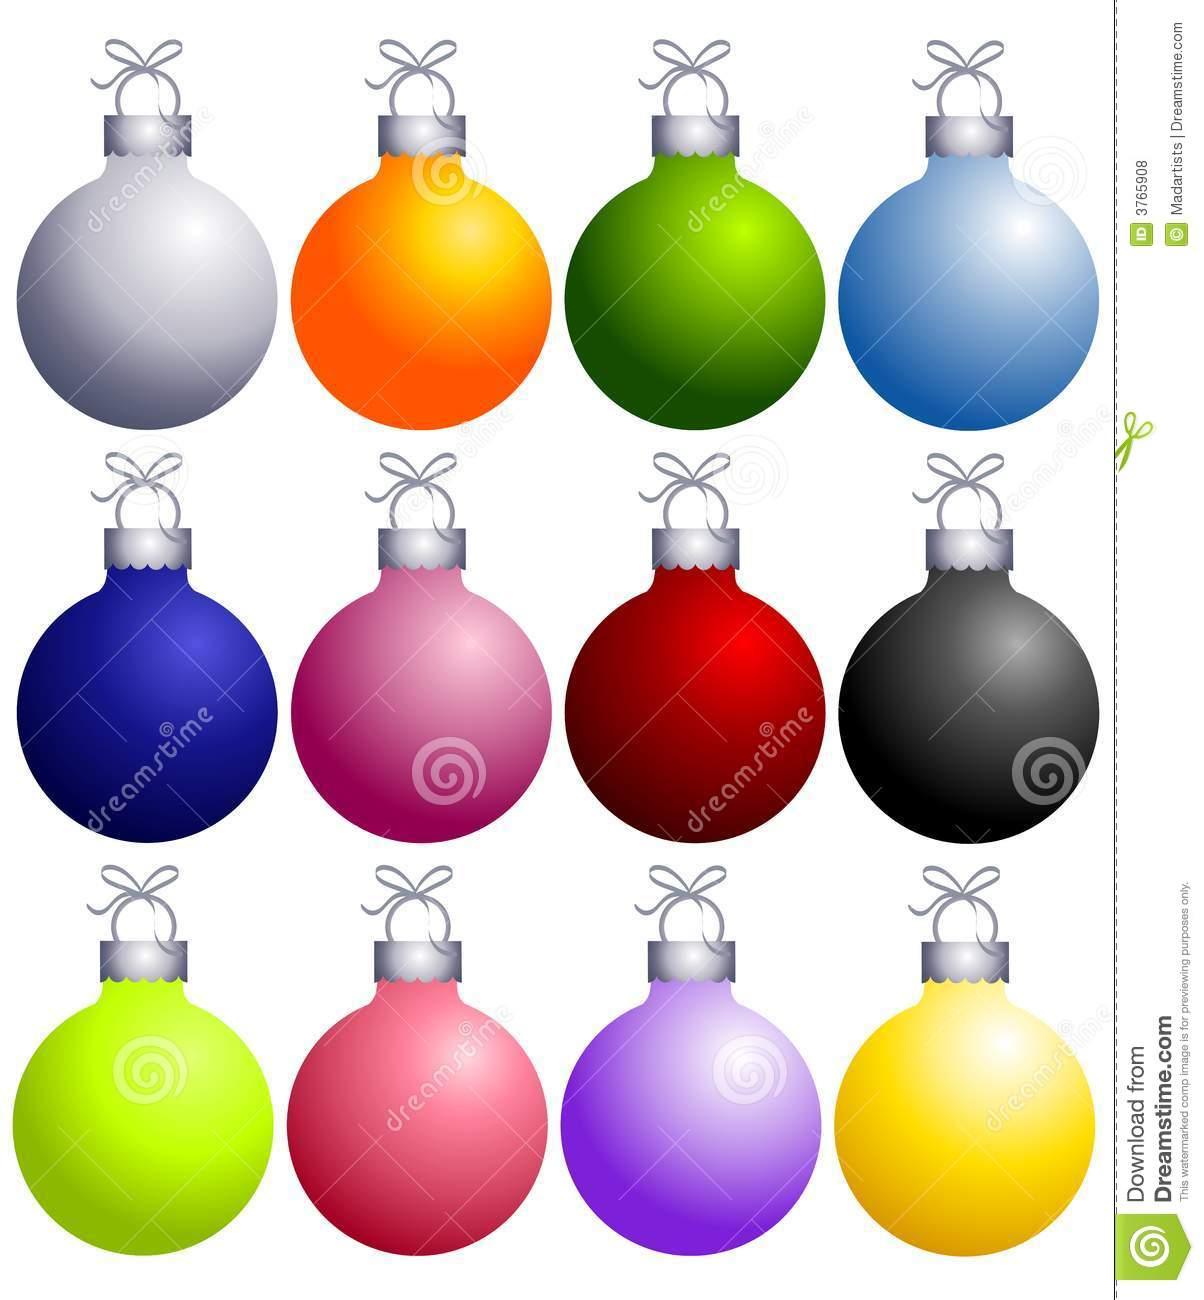 Colorful Christmas Ornaments Collection Stock Illustration.